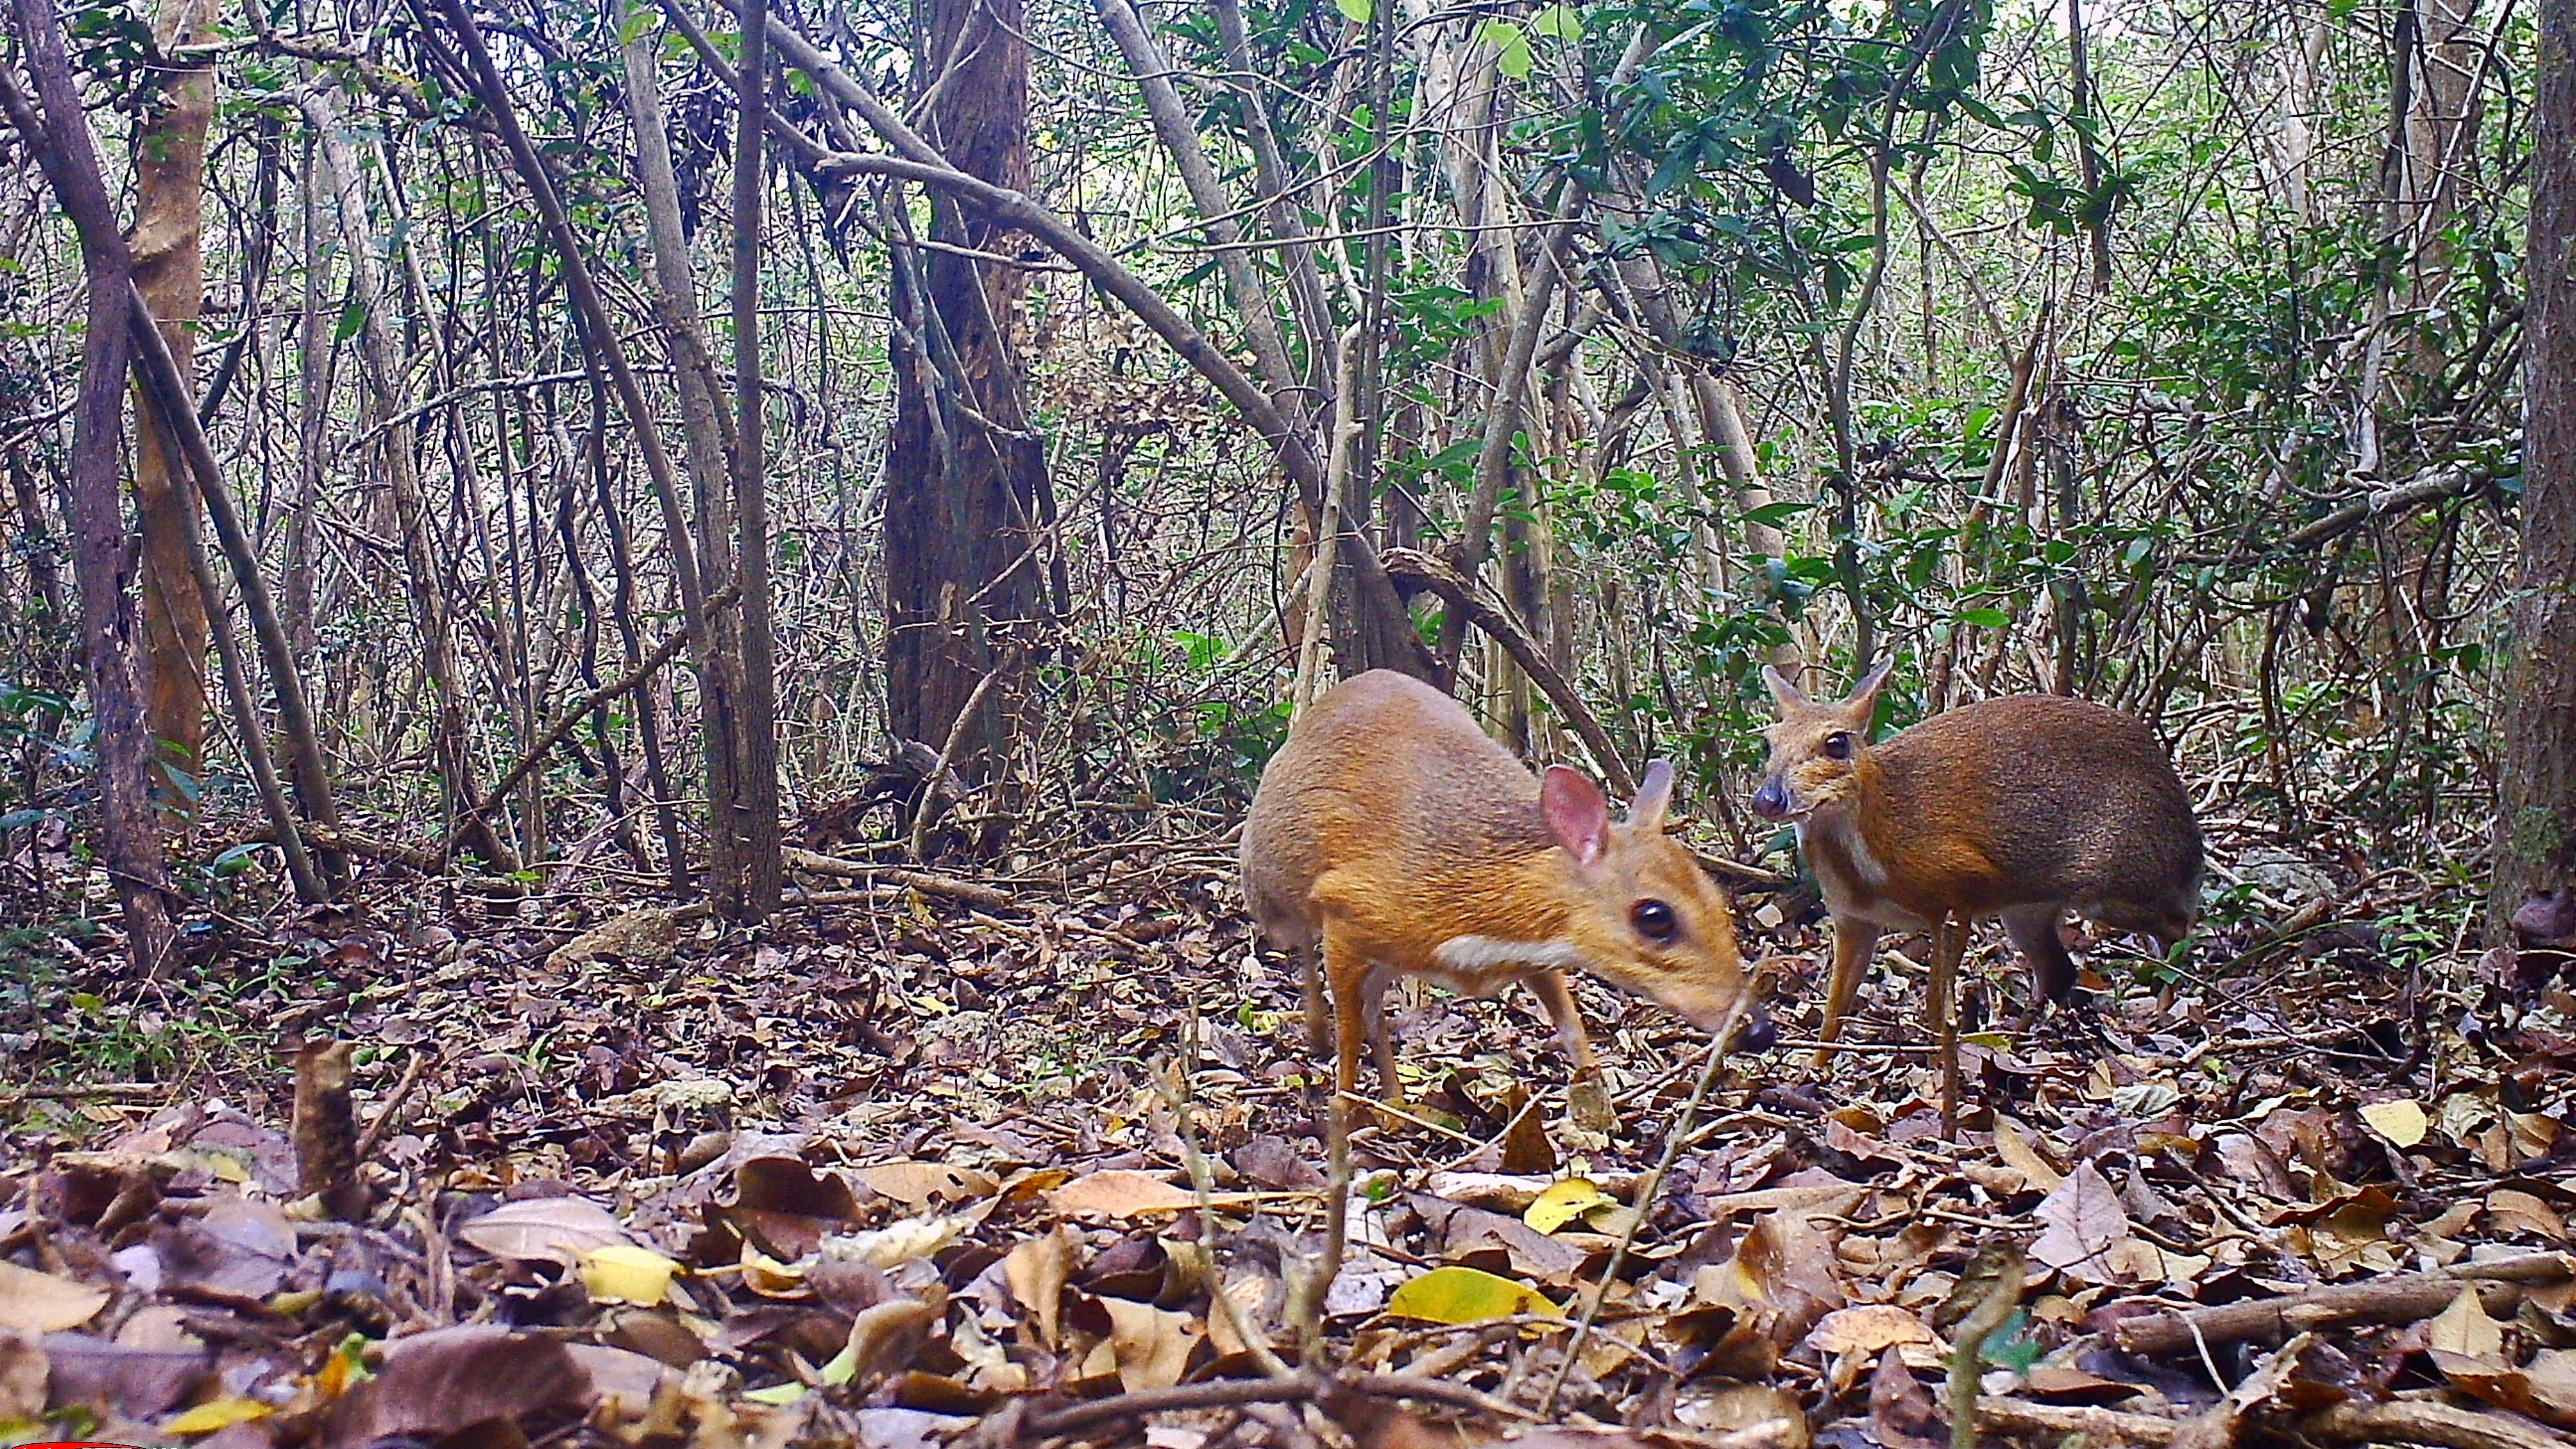 One of 25 Most Wanted Species Rediscovered in Remote Vietnam